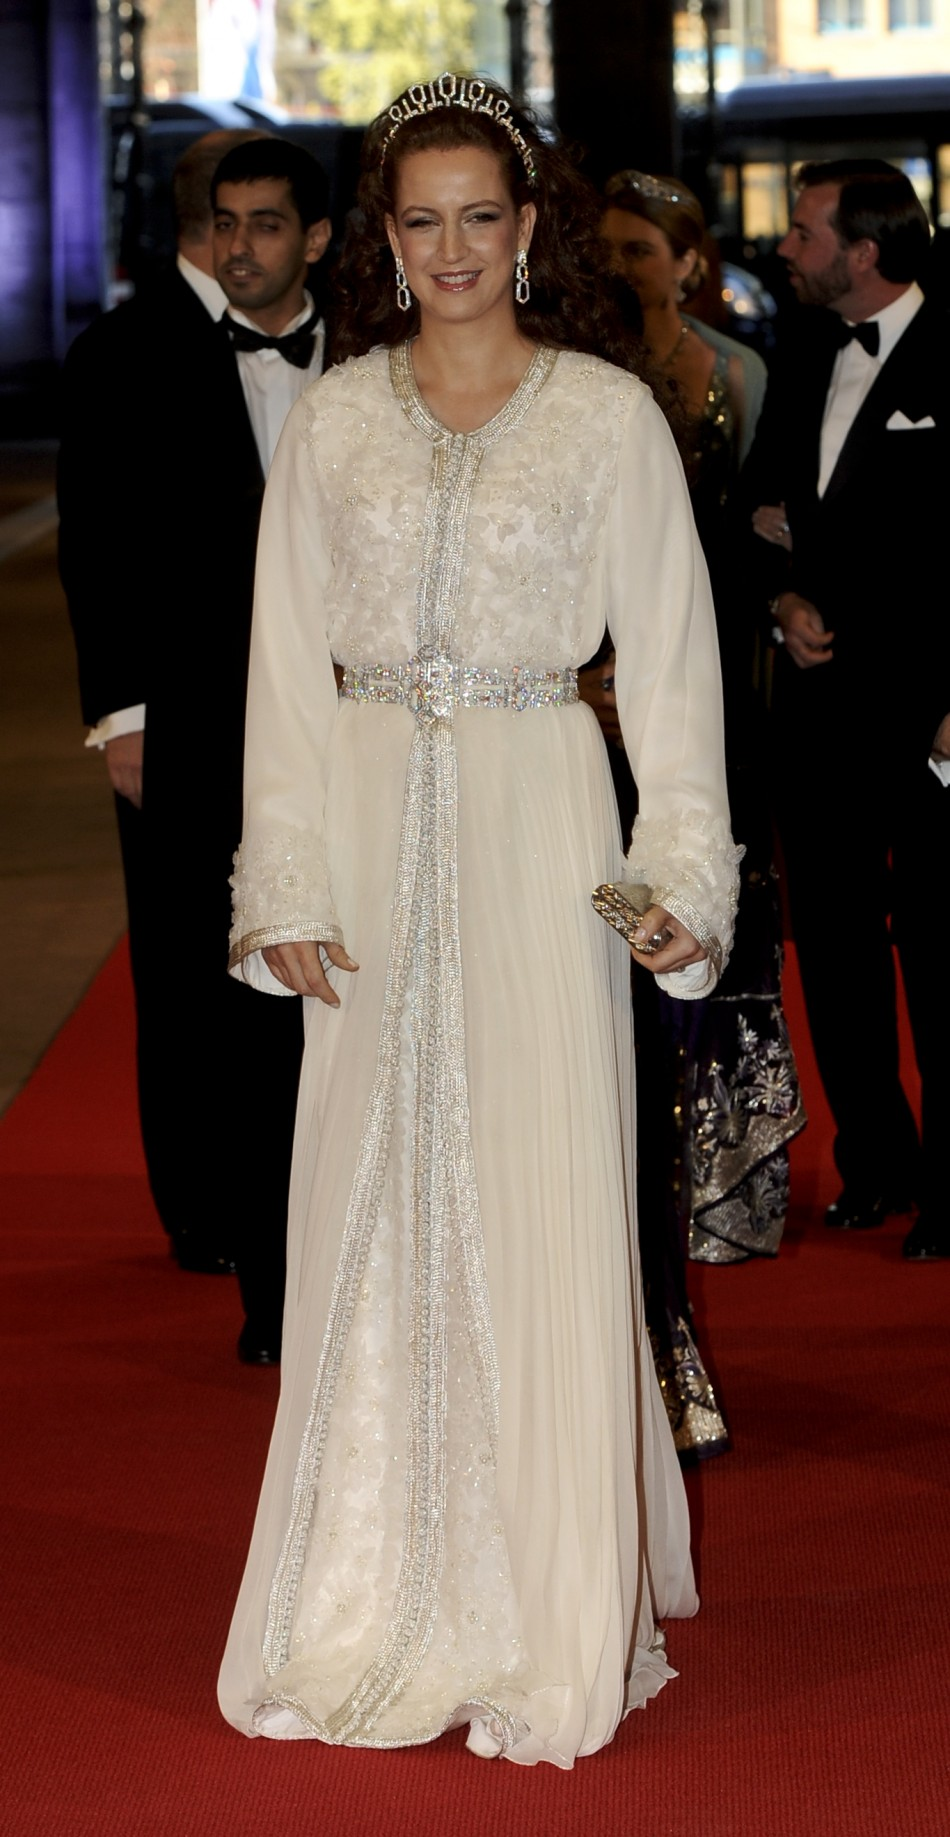 Moroccos Princess Lalla Salma arrives at a gala dinner organised on the eve of the abdication of Queen Beatrix of the Netherlands and the inauguration of her successor King Willem-Alexander at the Rijksmuseum in Amsterdam April 29, 2013.